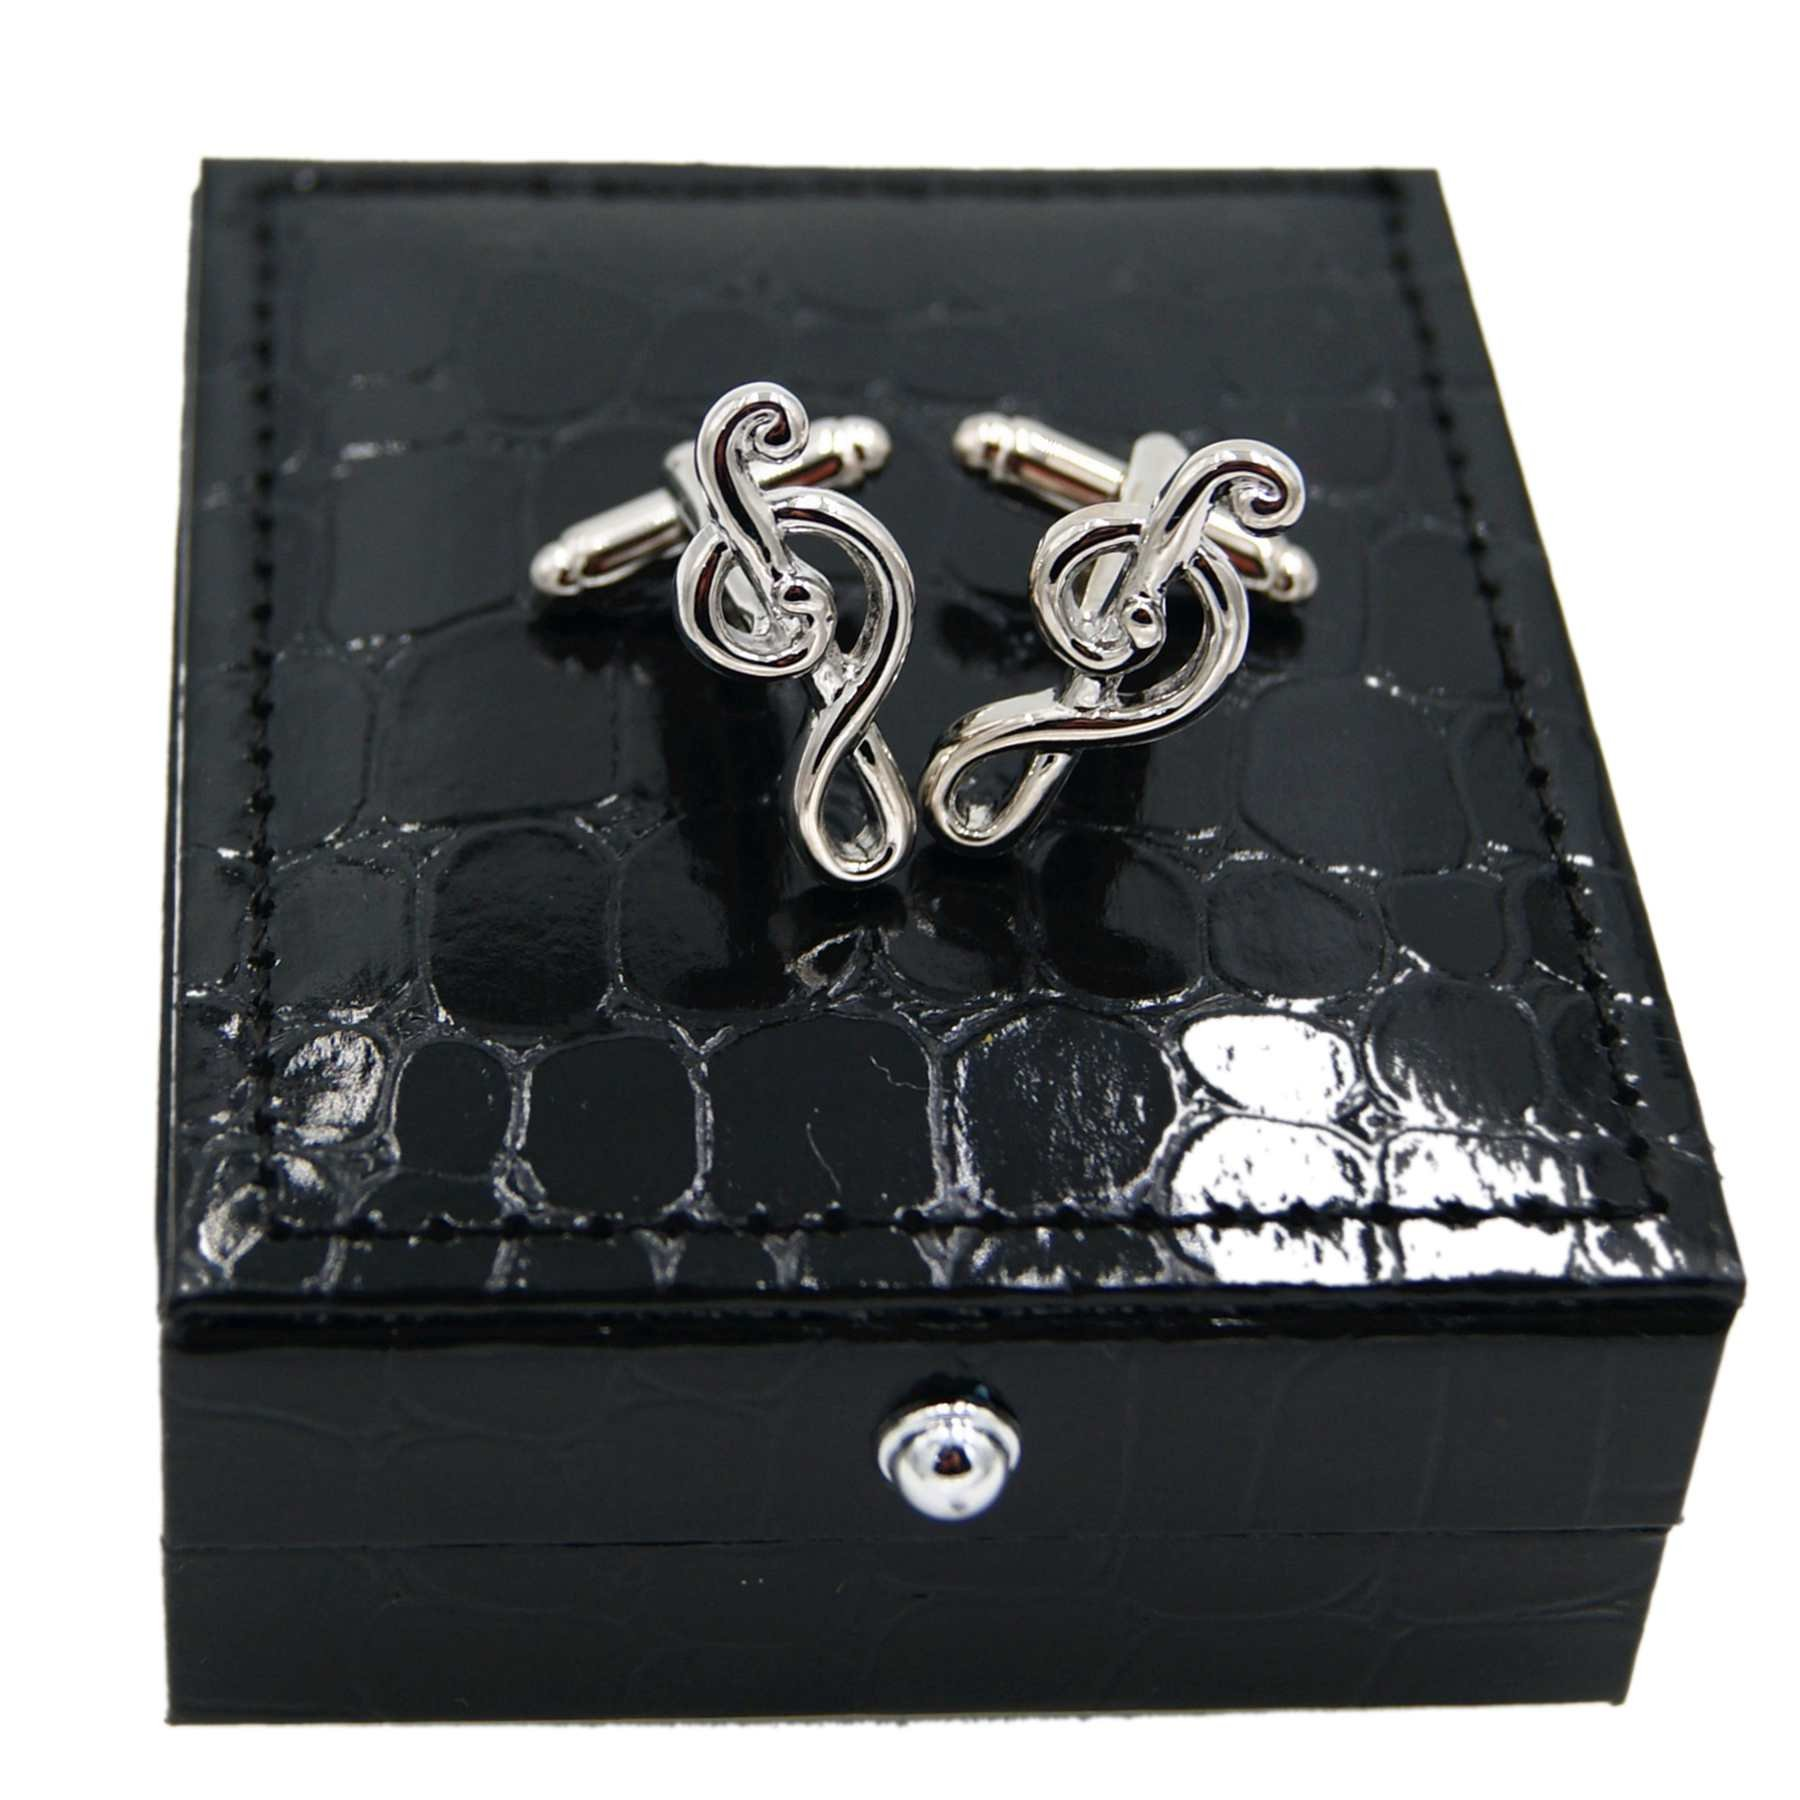 RXBC2011 Men's Music Note Style French Shirts Cufflinks 1 Pair Set by RXBC2011 (Image #8)